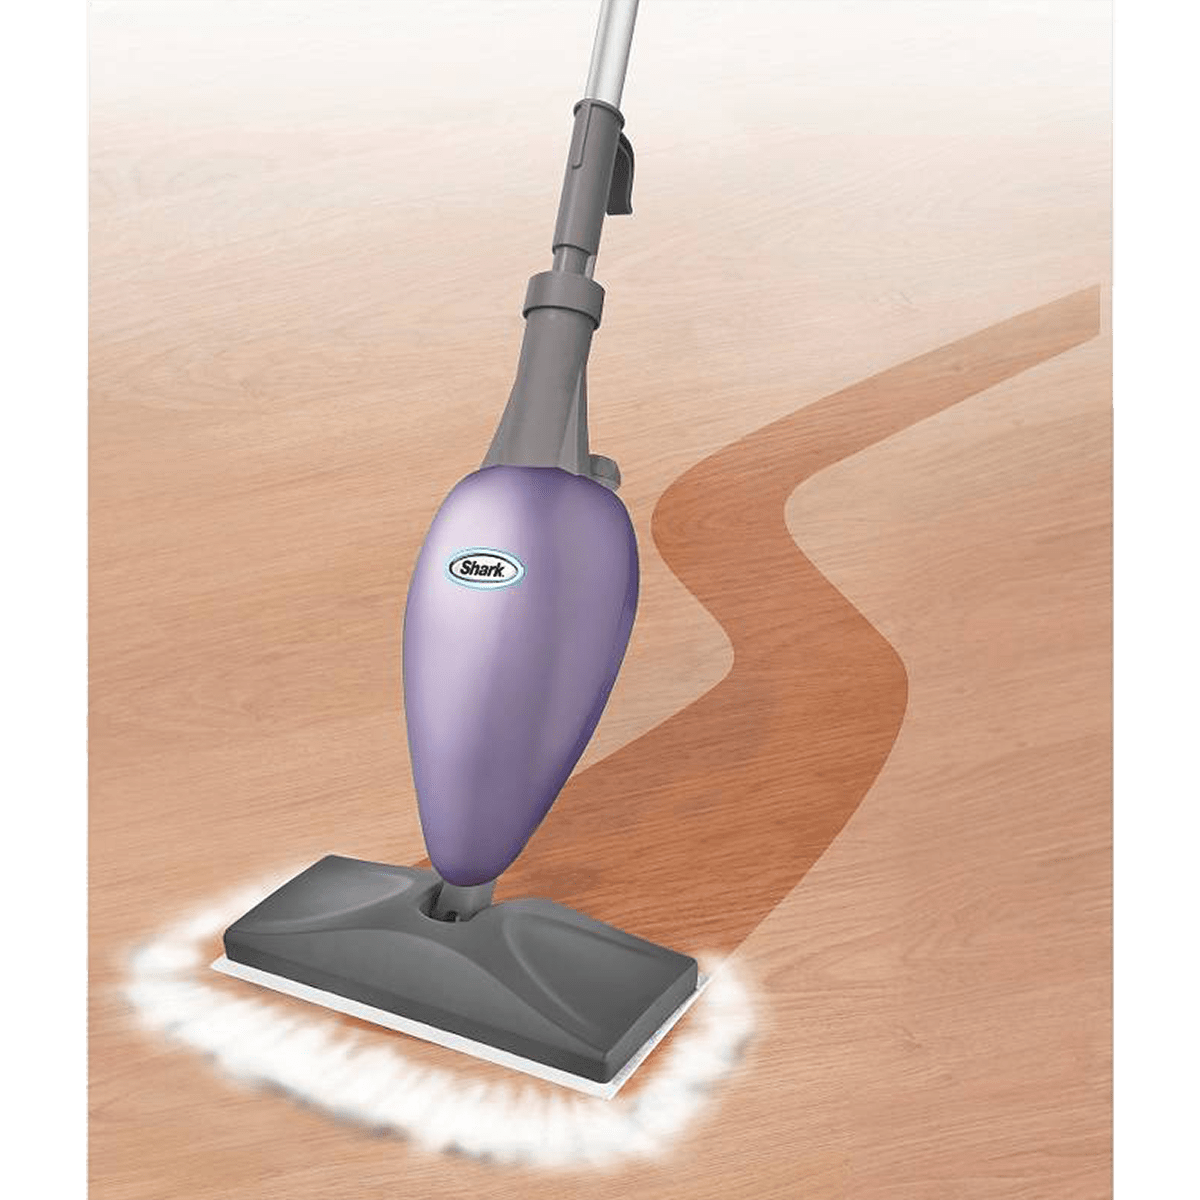 Laminate Flooring Shark Steam Mop Floor Matttroy